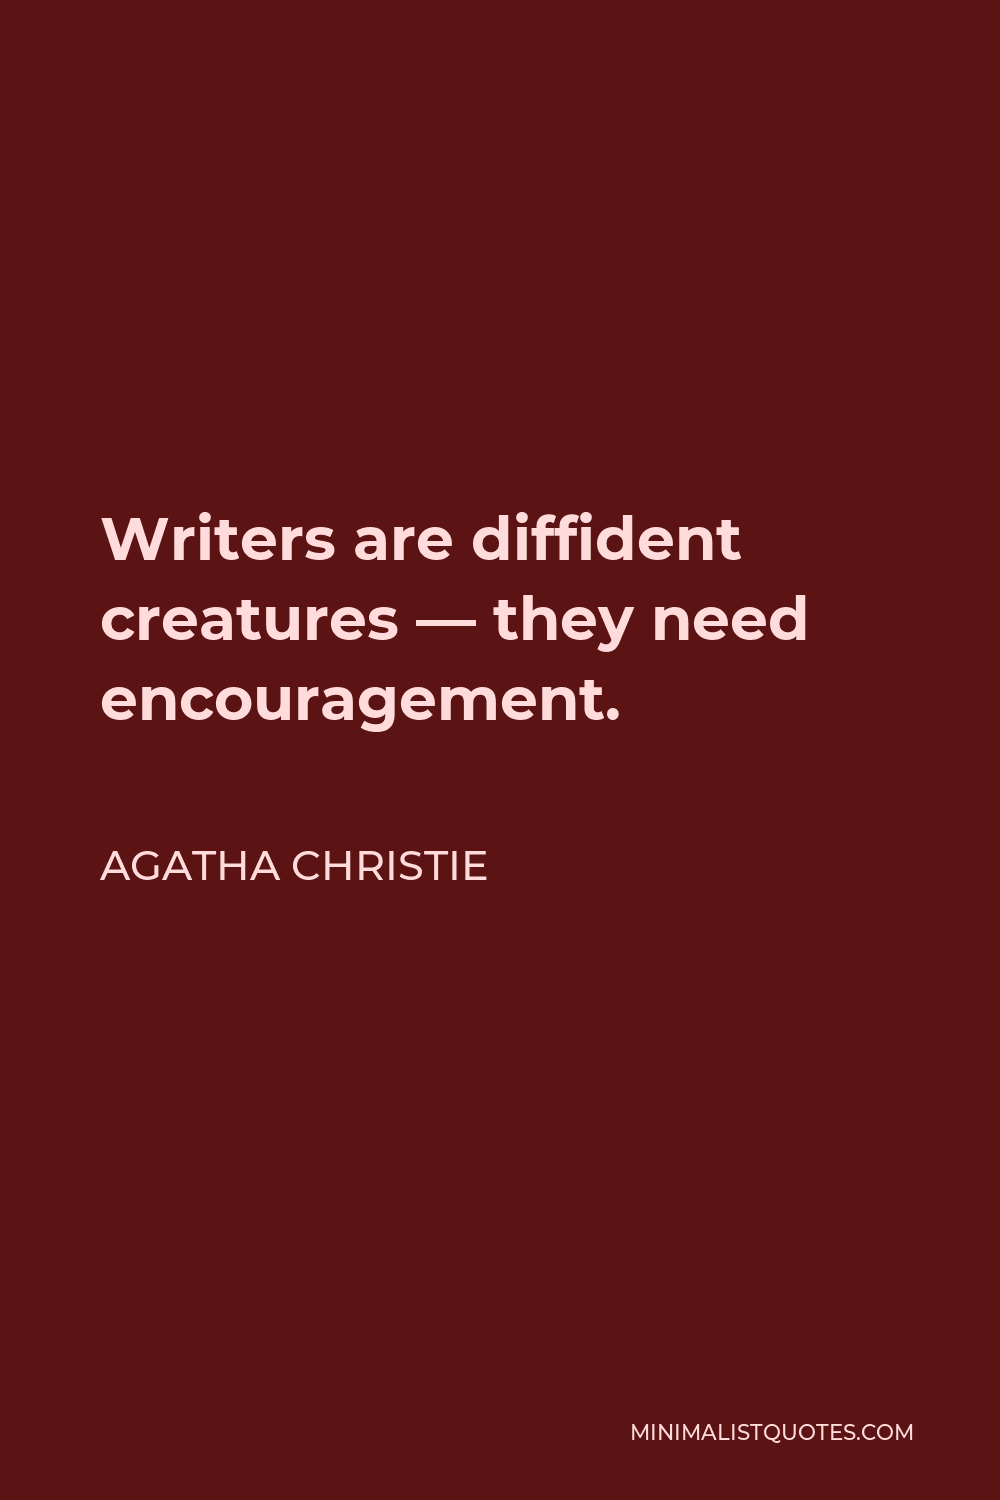 Agatha Christie Quote - Writers are diffident creatures — they need encouragement.